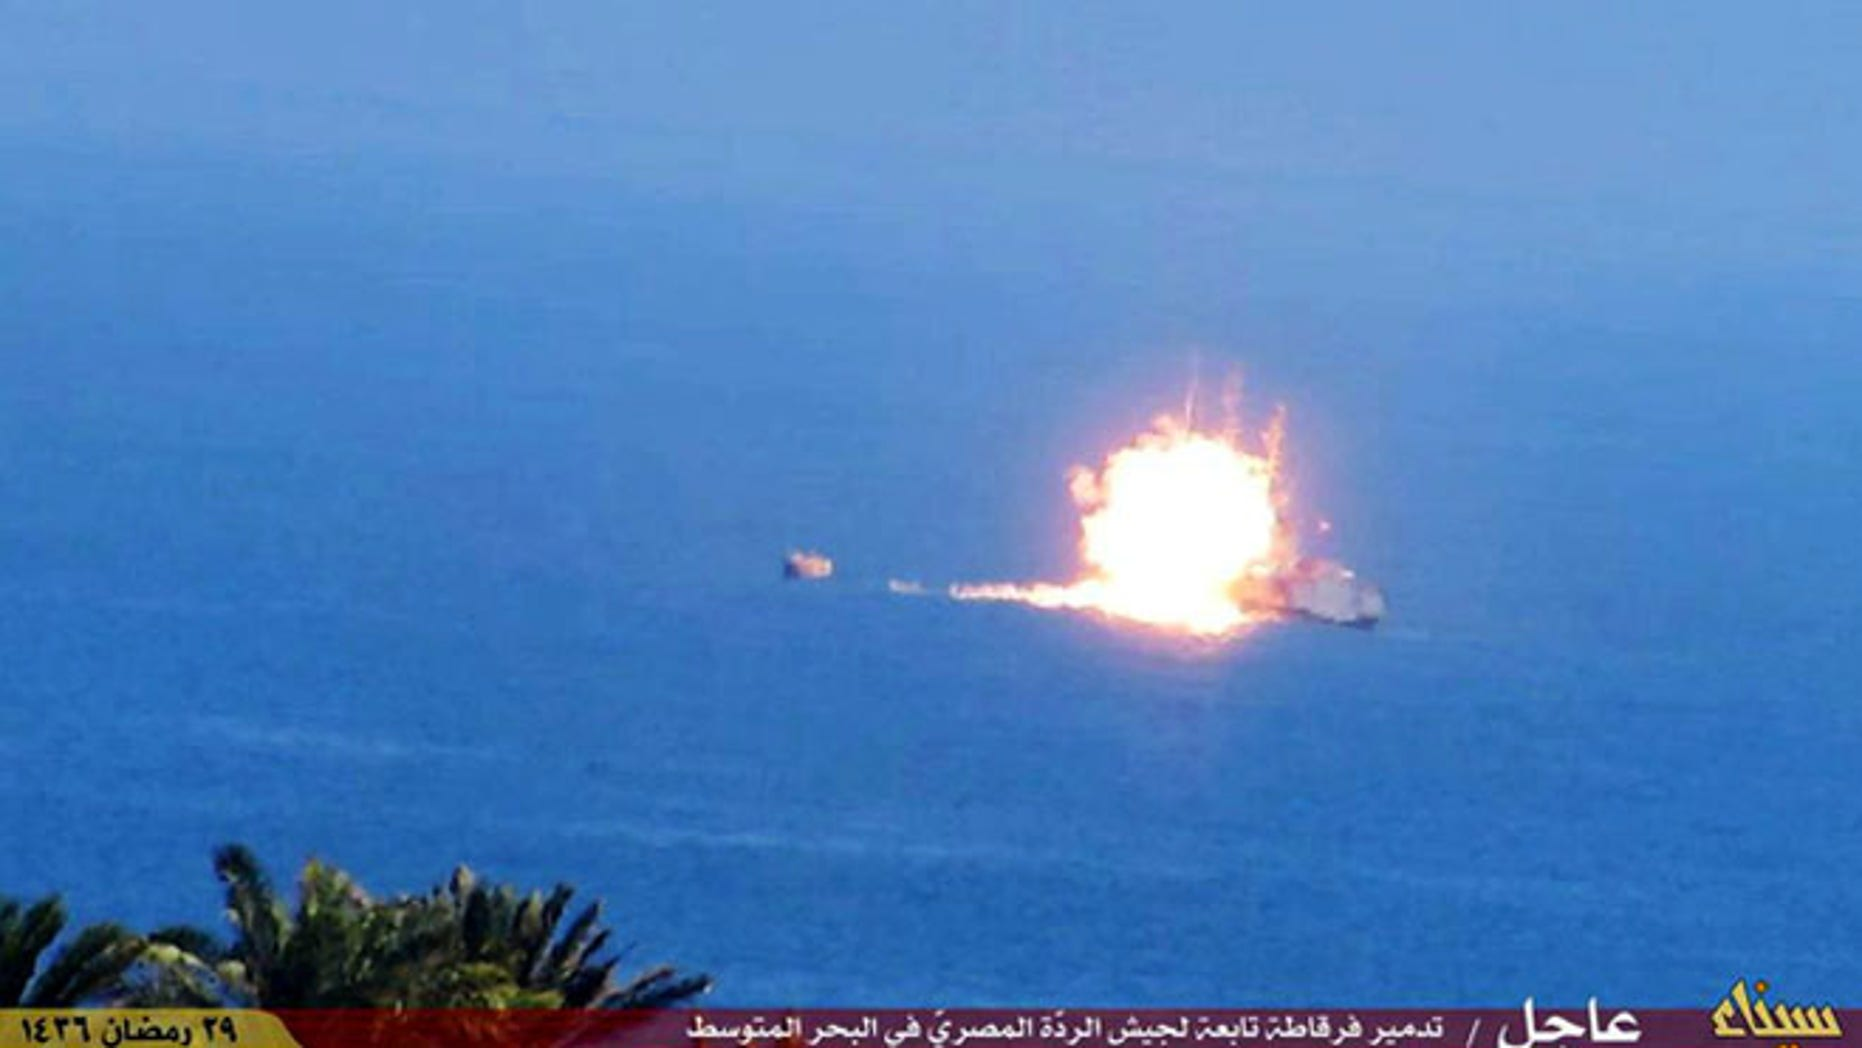 This image posted on a militant social media account shows a fireball rising from an Egyptian Navy vessel.